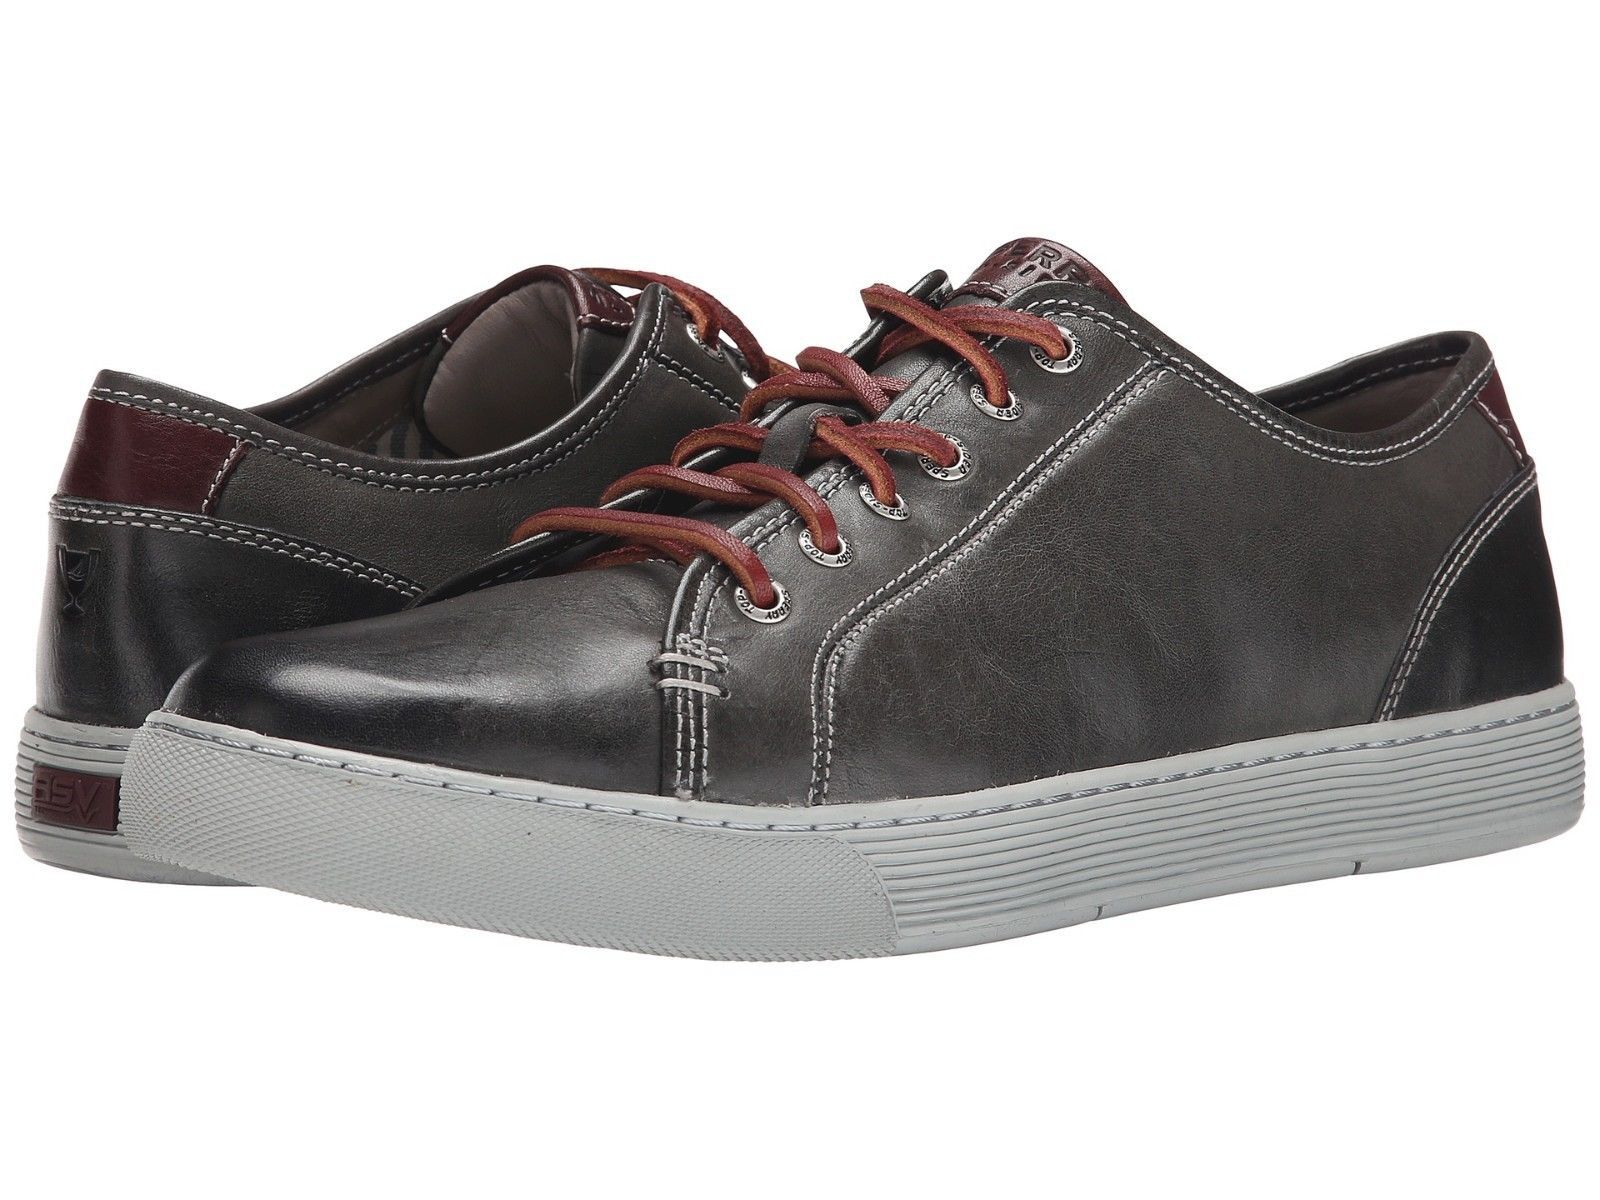 6fbc90949e1c Men s Sperry Top-Sider Gold Cup Sport Casual and 50 similar items. S l1600